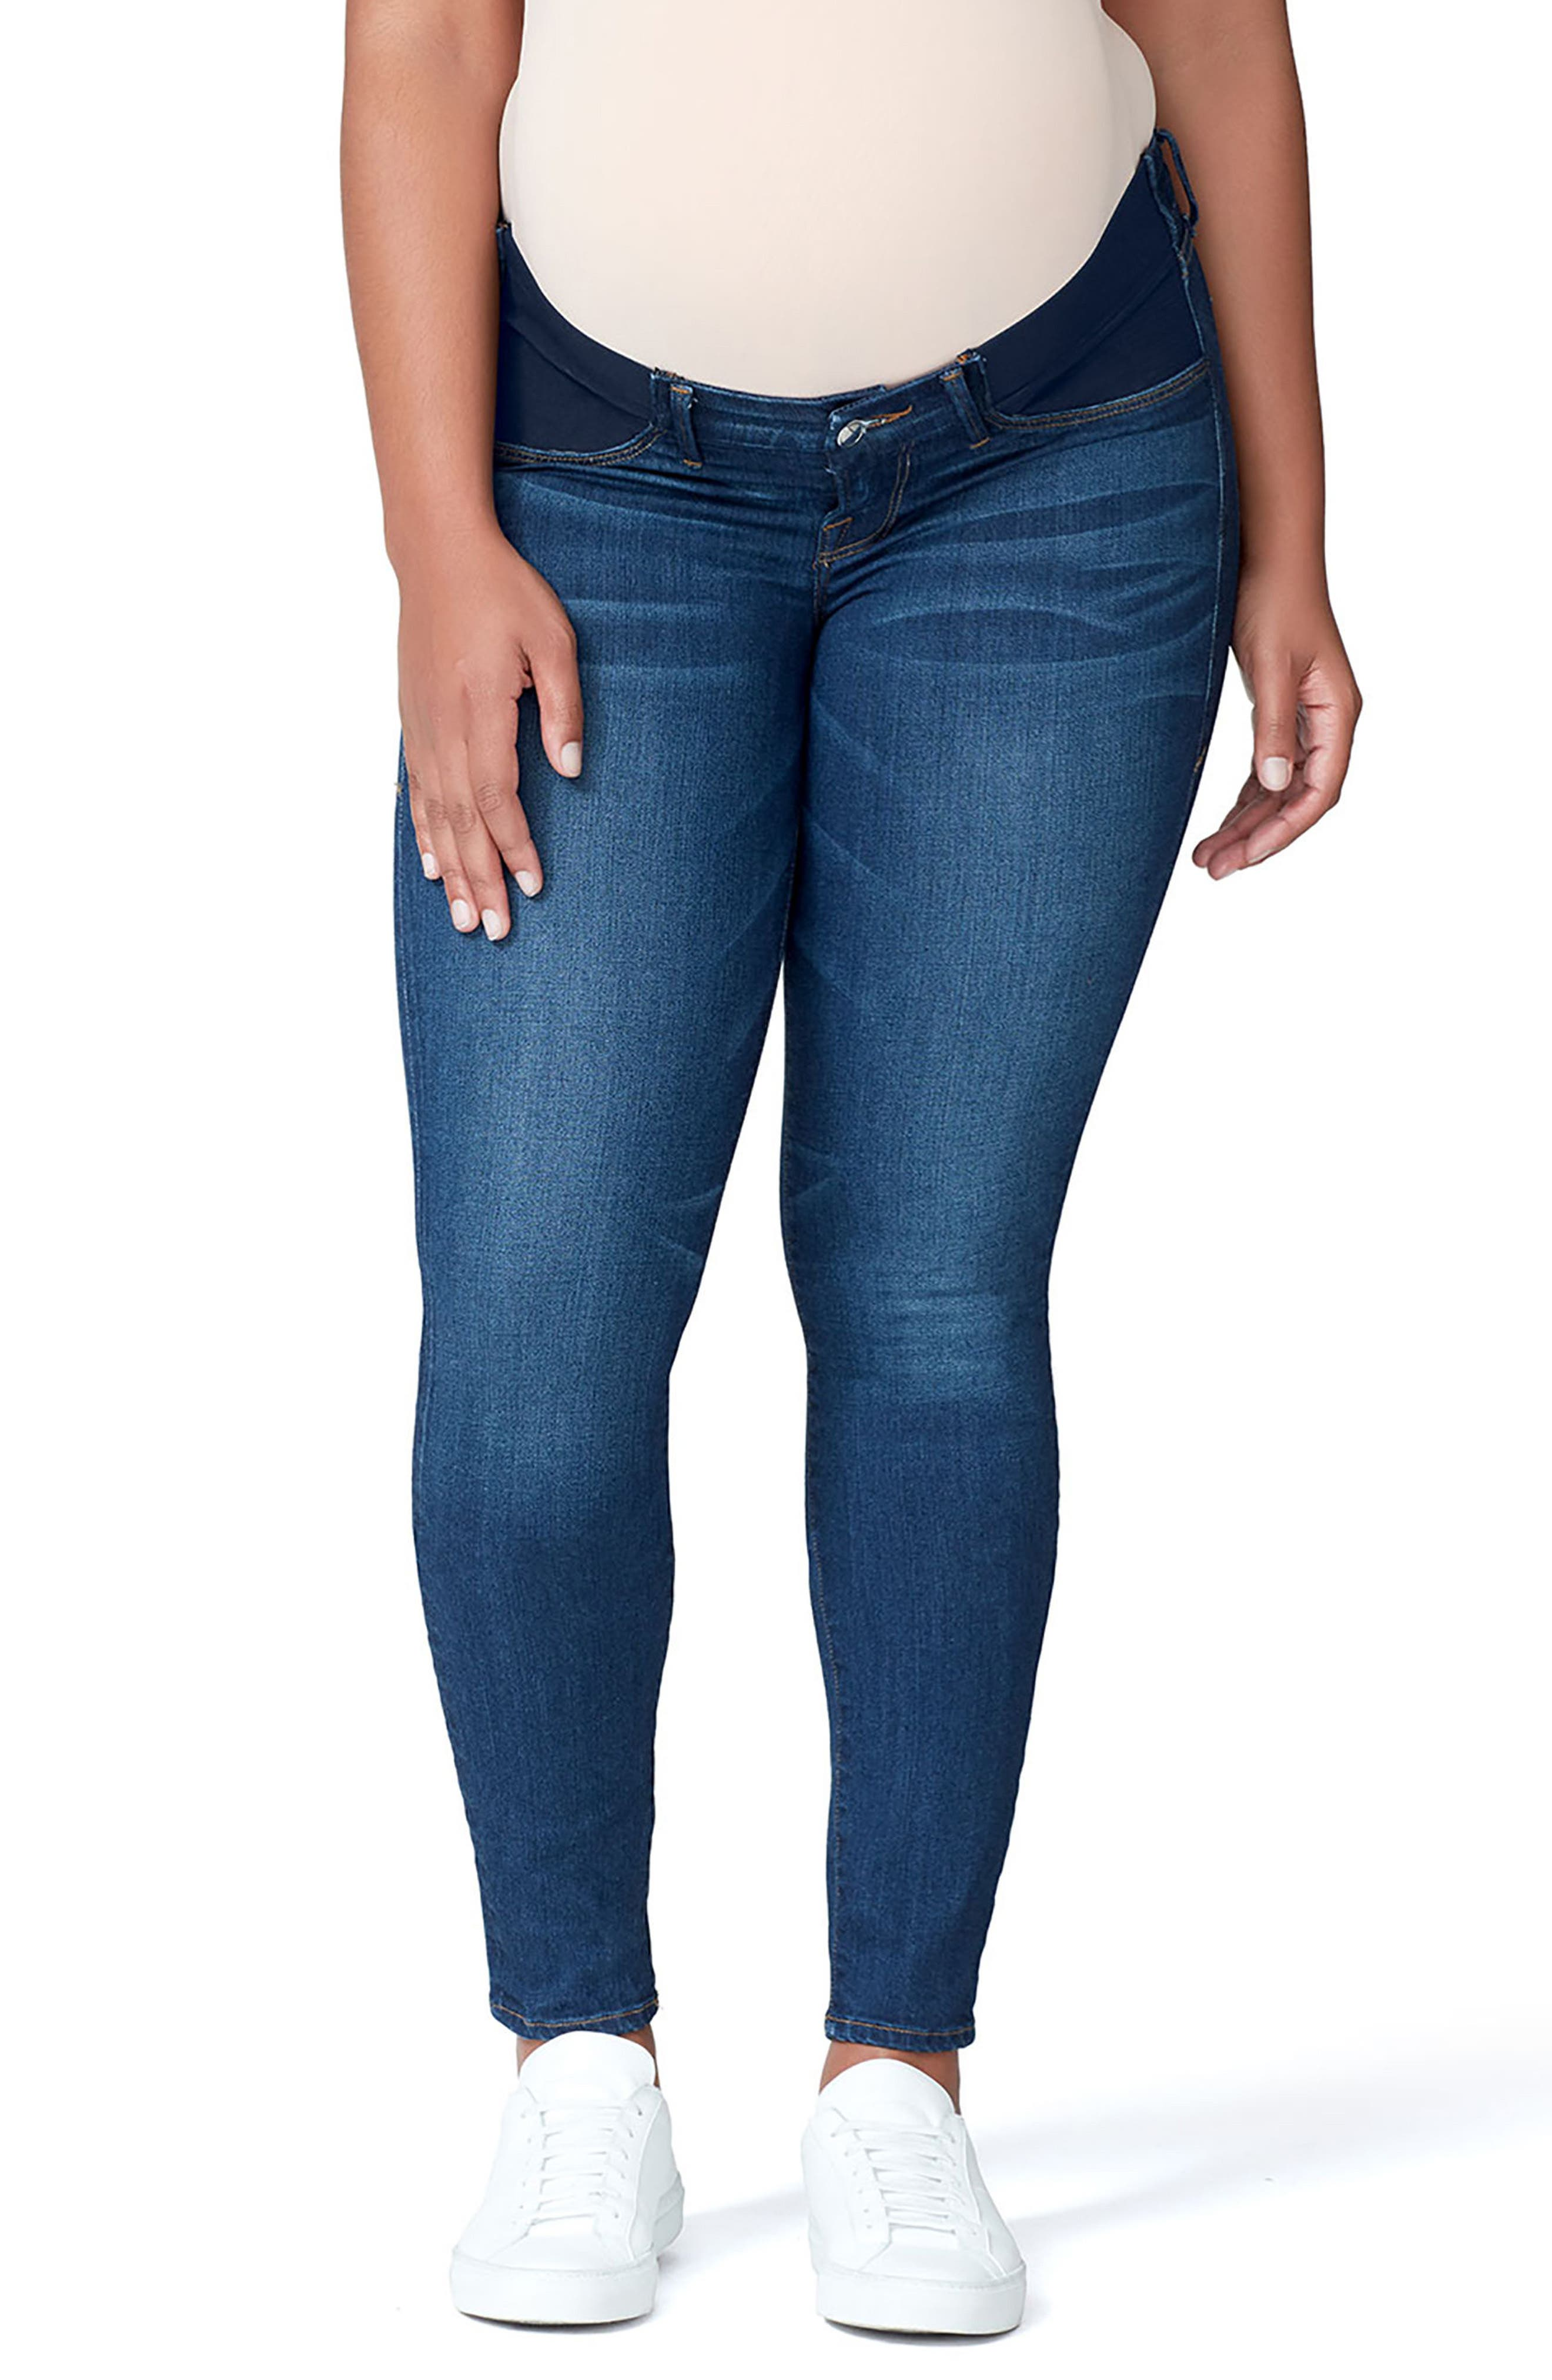 Good Mama The Honeymoon Low Rise Maternity Skinny Jeans,                         Main,                         color, Blue